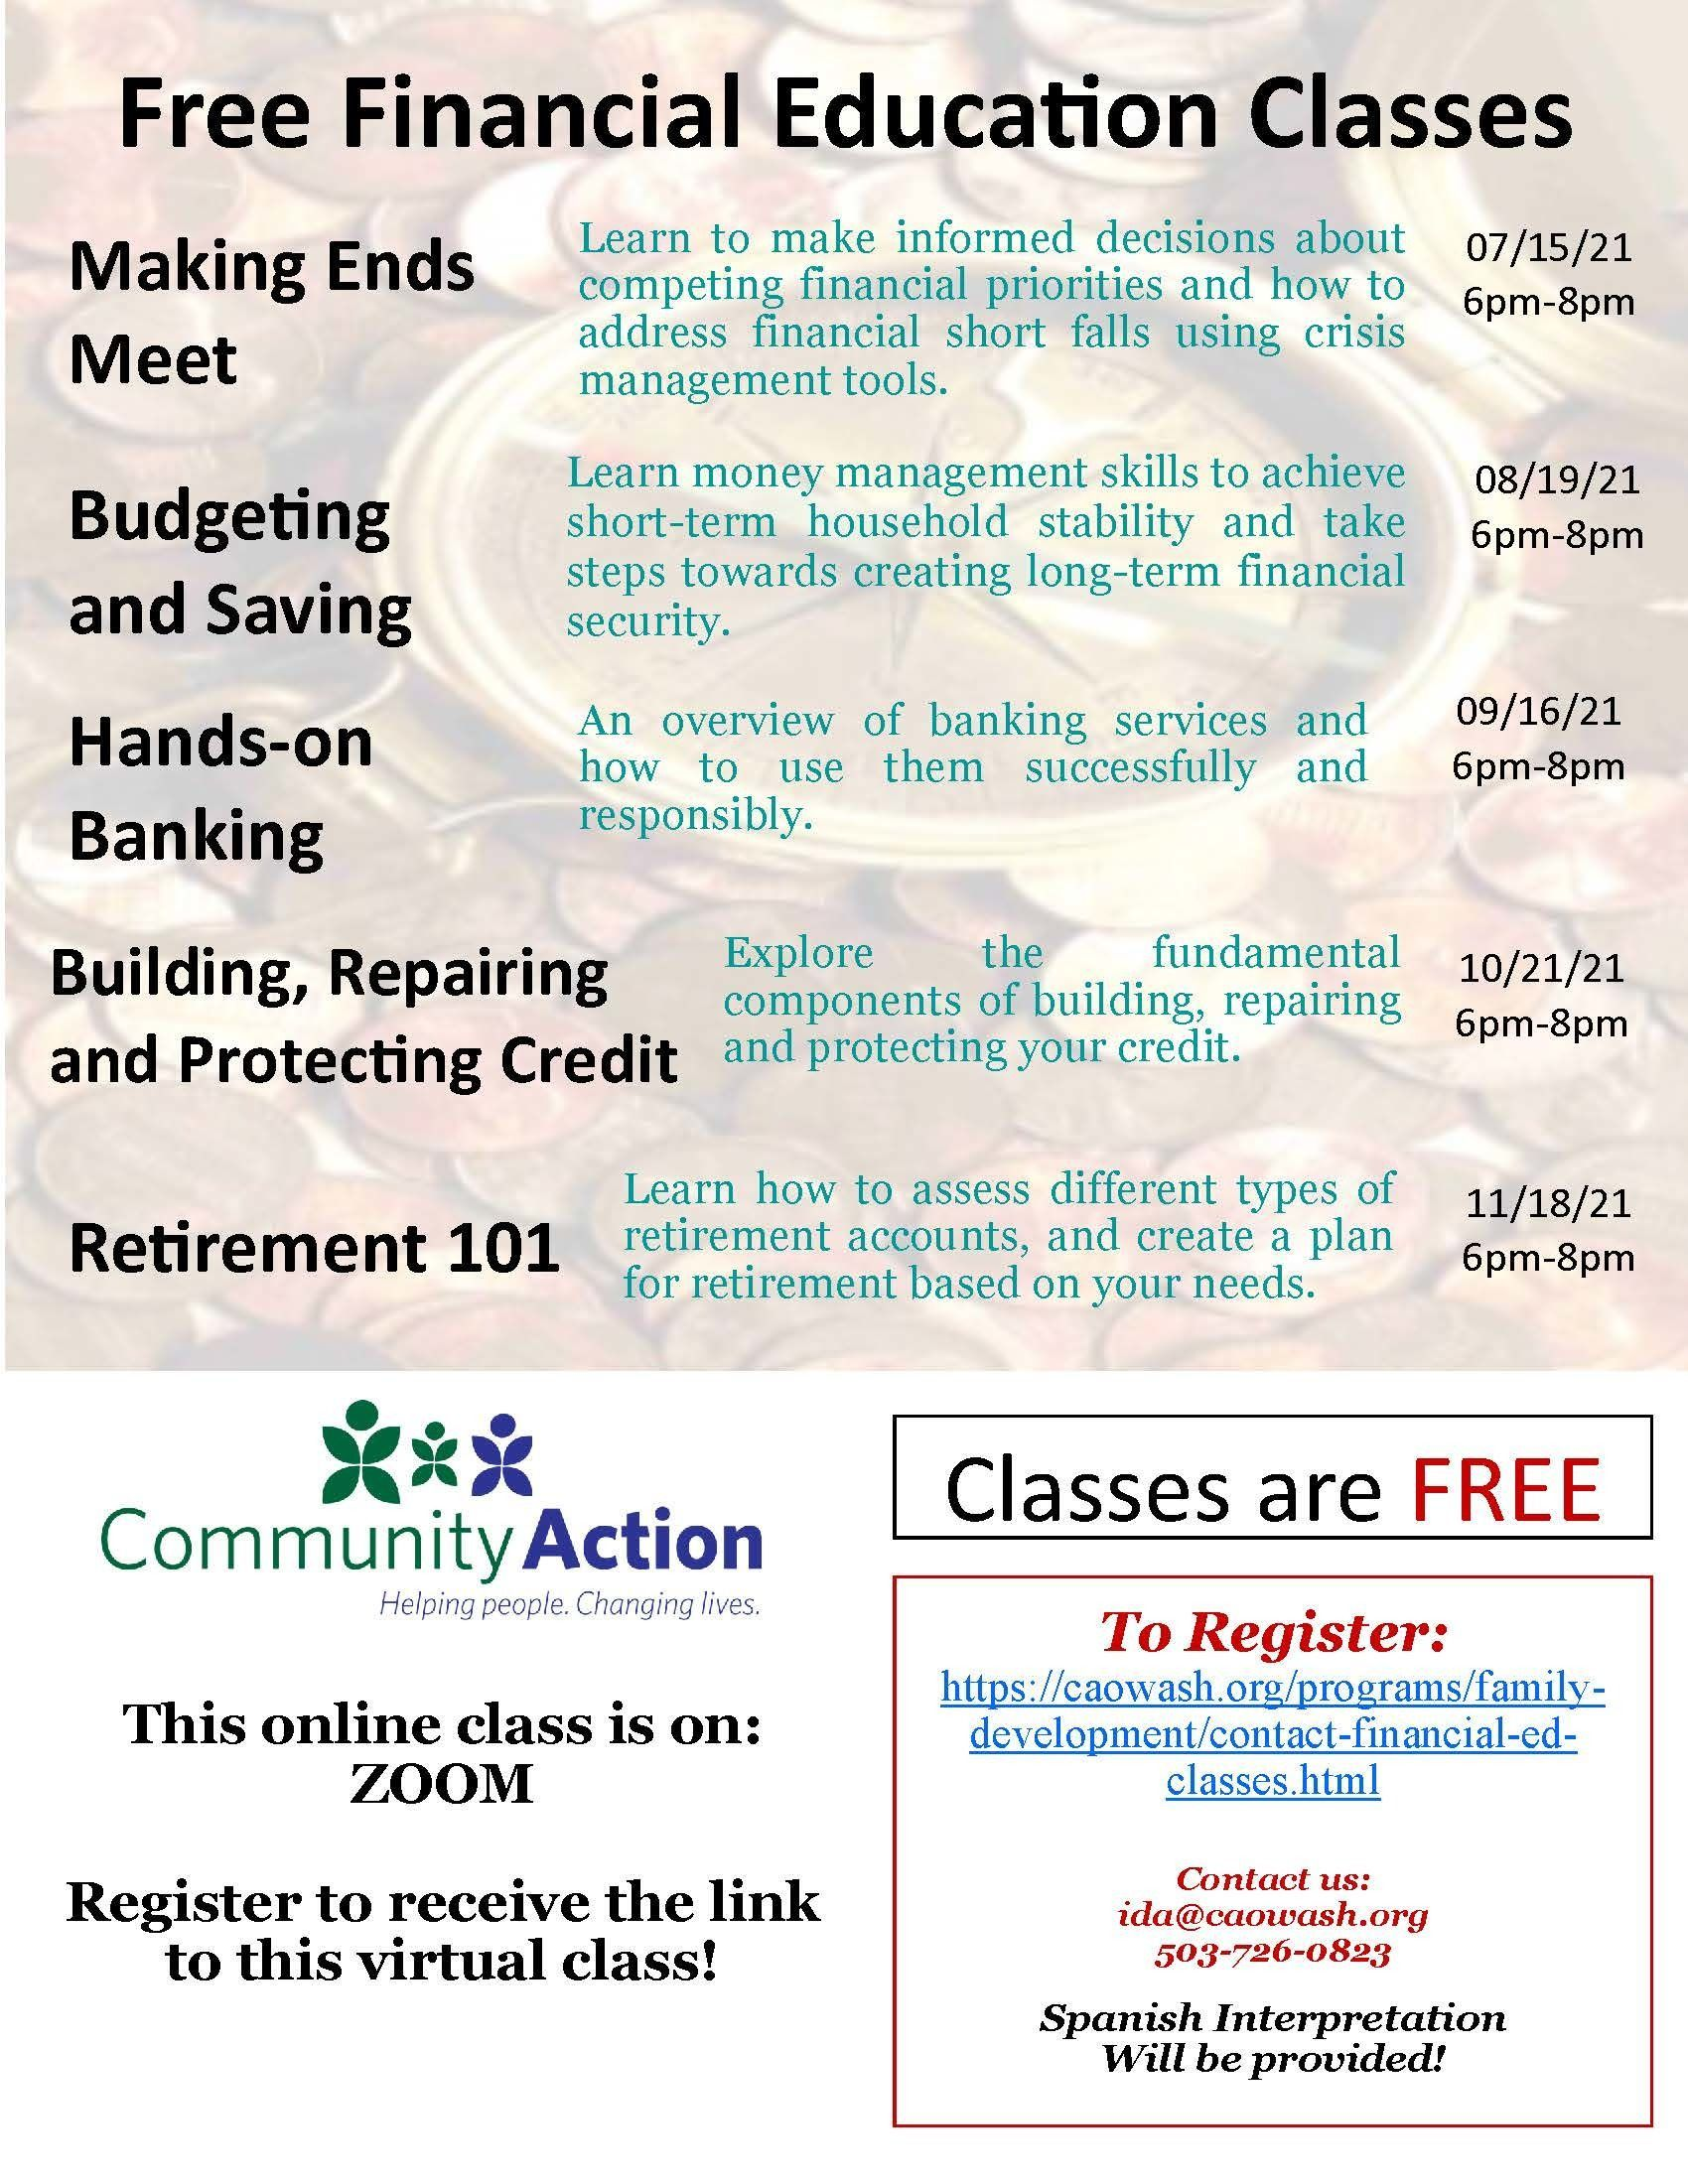 Flyer with more information on the financial education classes. Please email ida@caowash.org for a PDF version if needed.